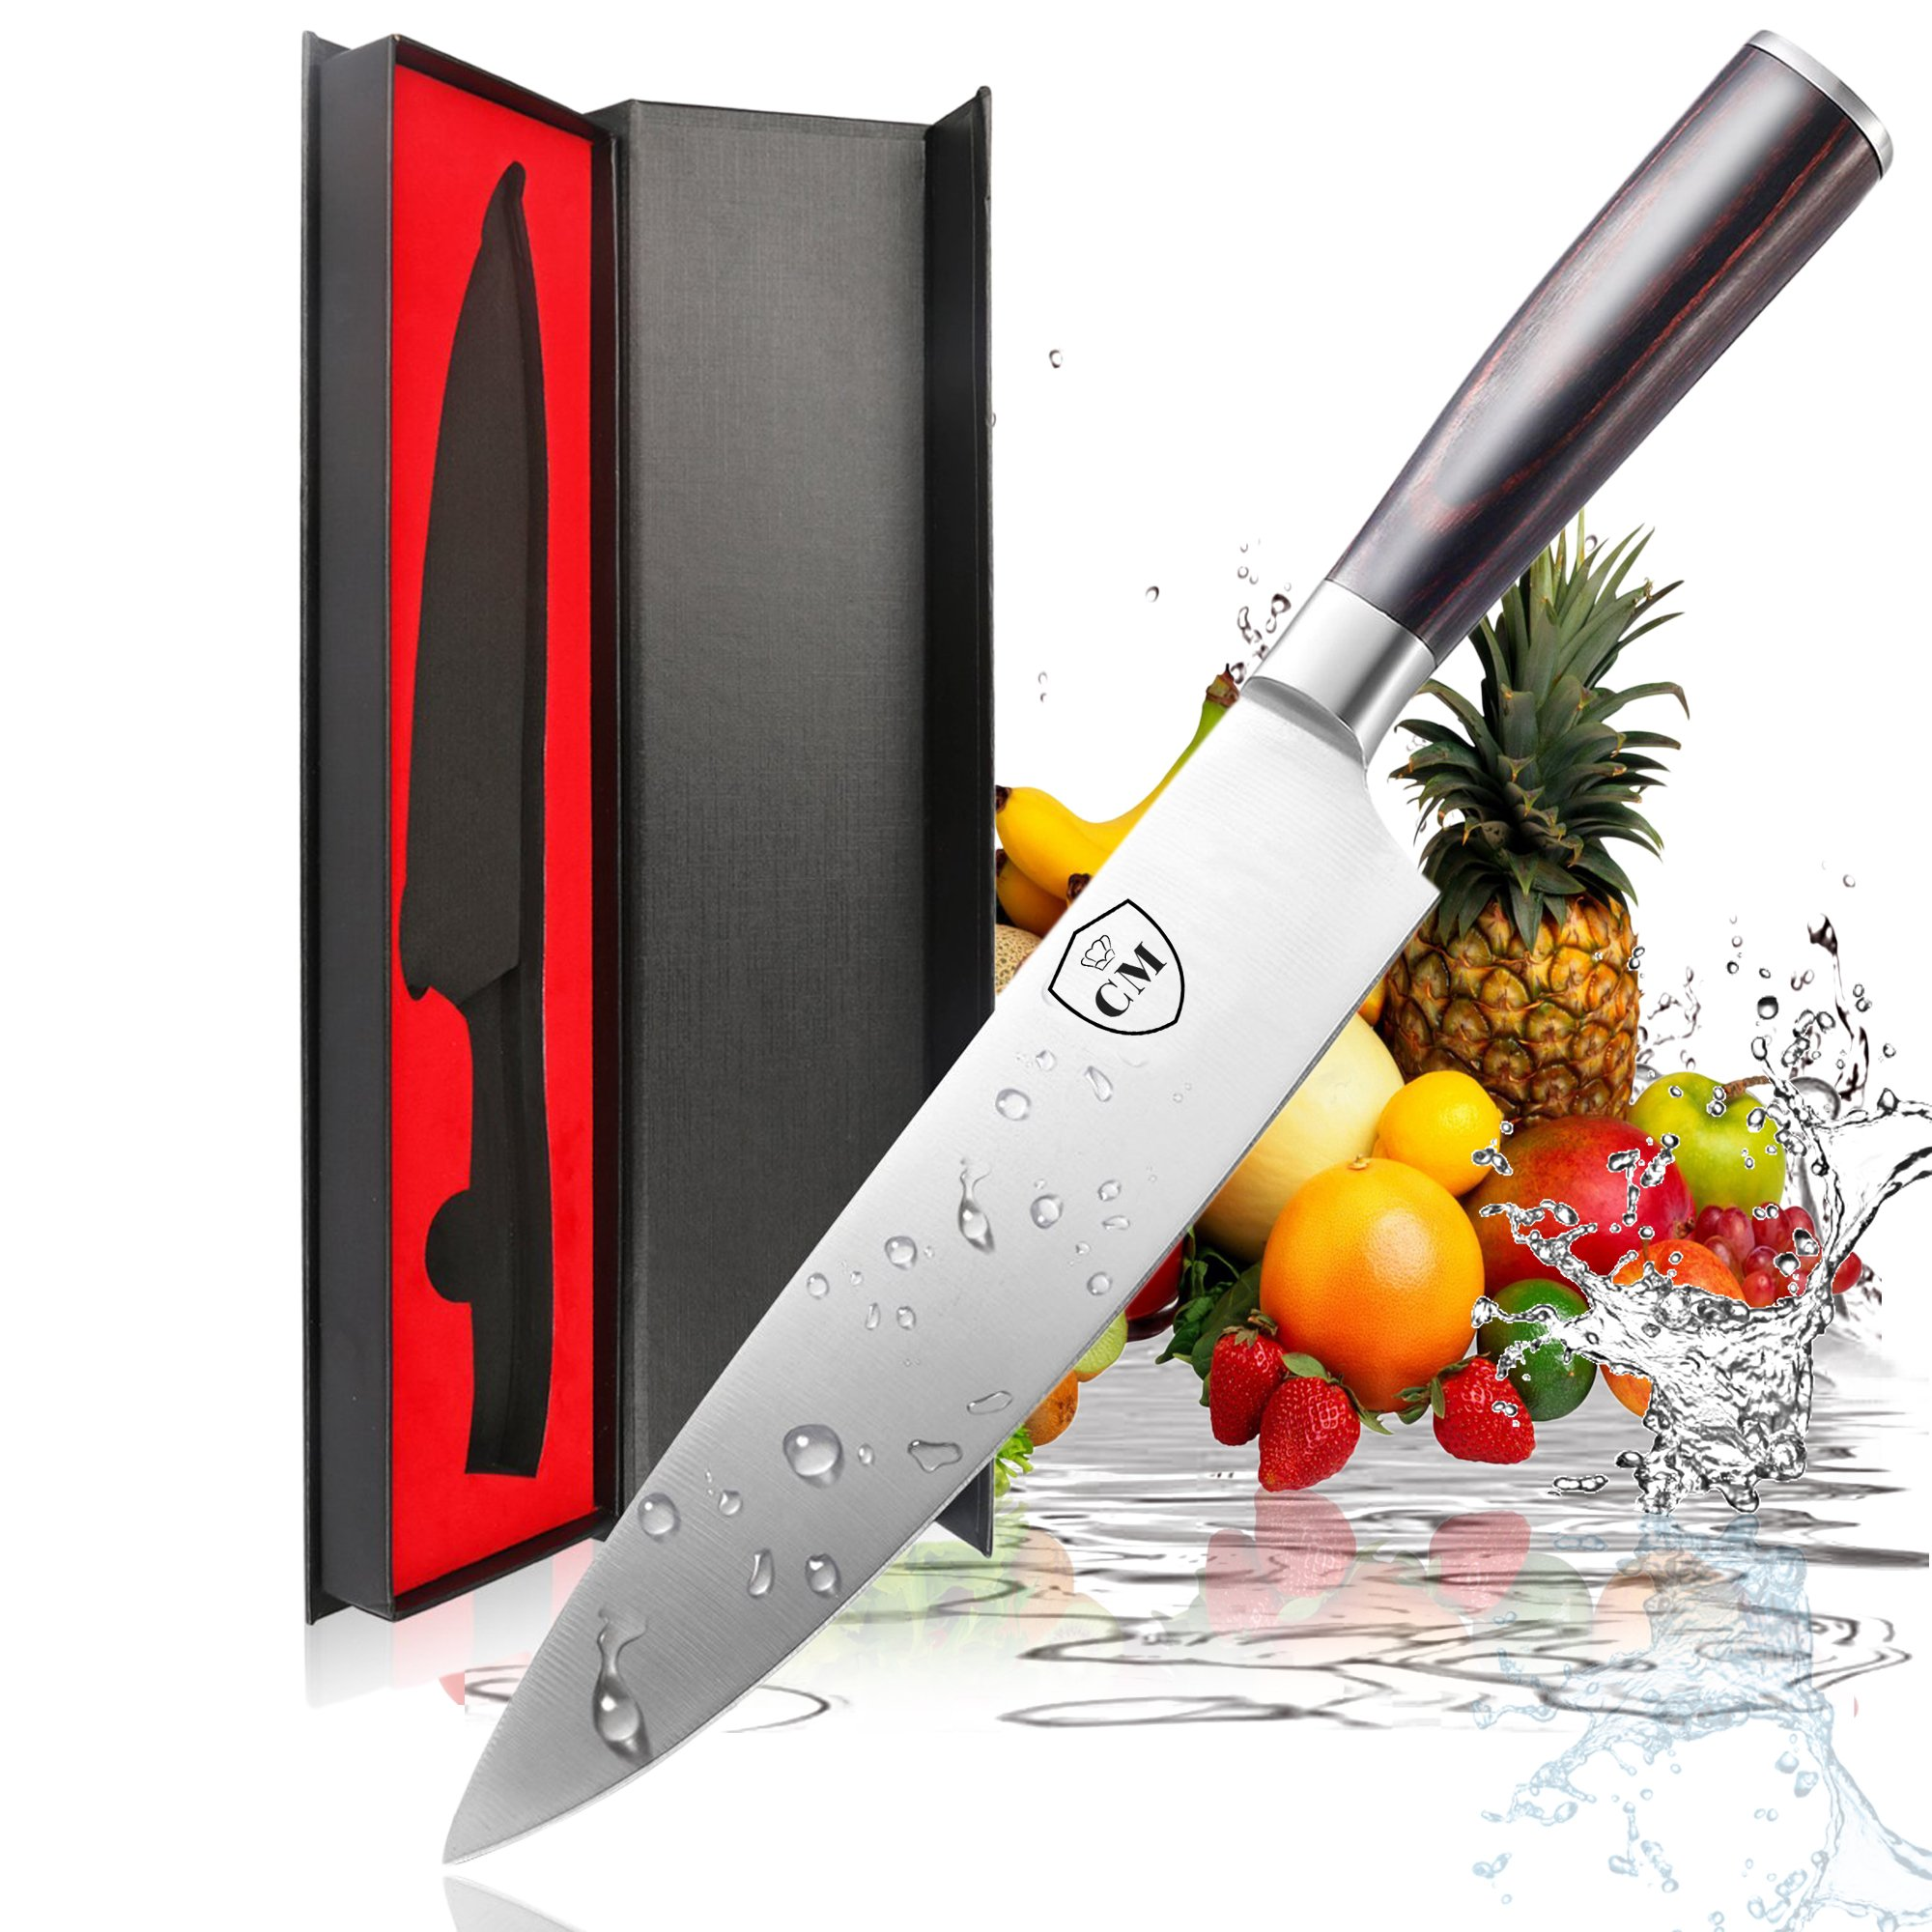 Chef Knife by Chef's Main, Chefs knife 8 inch, Kitchen Knife, Stainless Steel, High Carbon, Ergonomic Pakka Wood Handle, Ultra Sharp Edge knife for Chefs